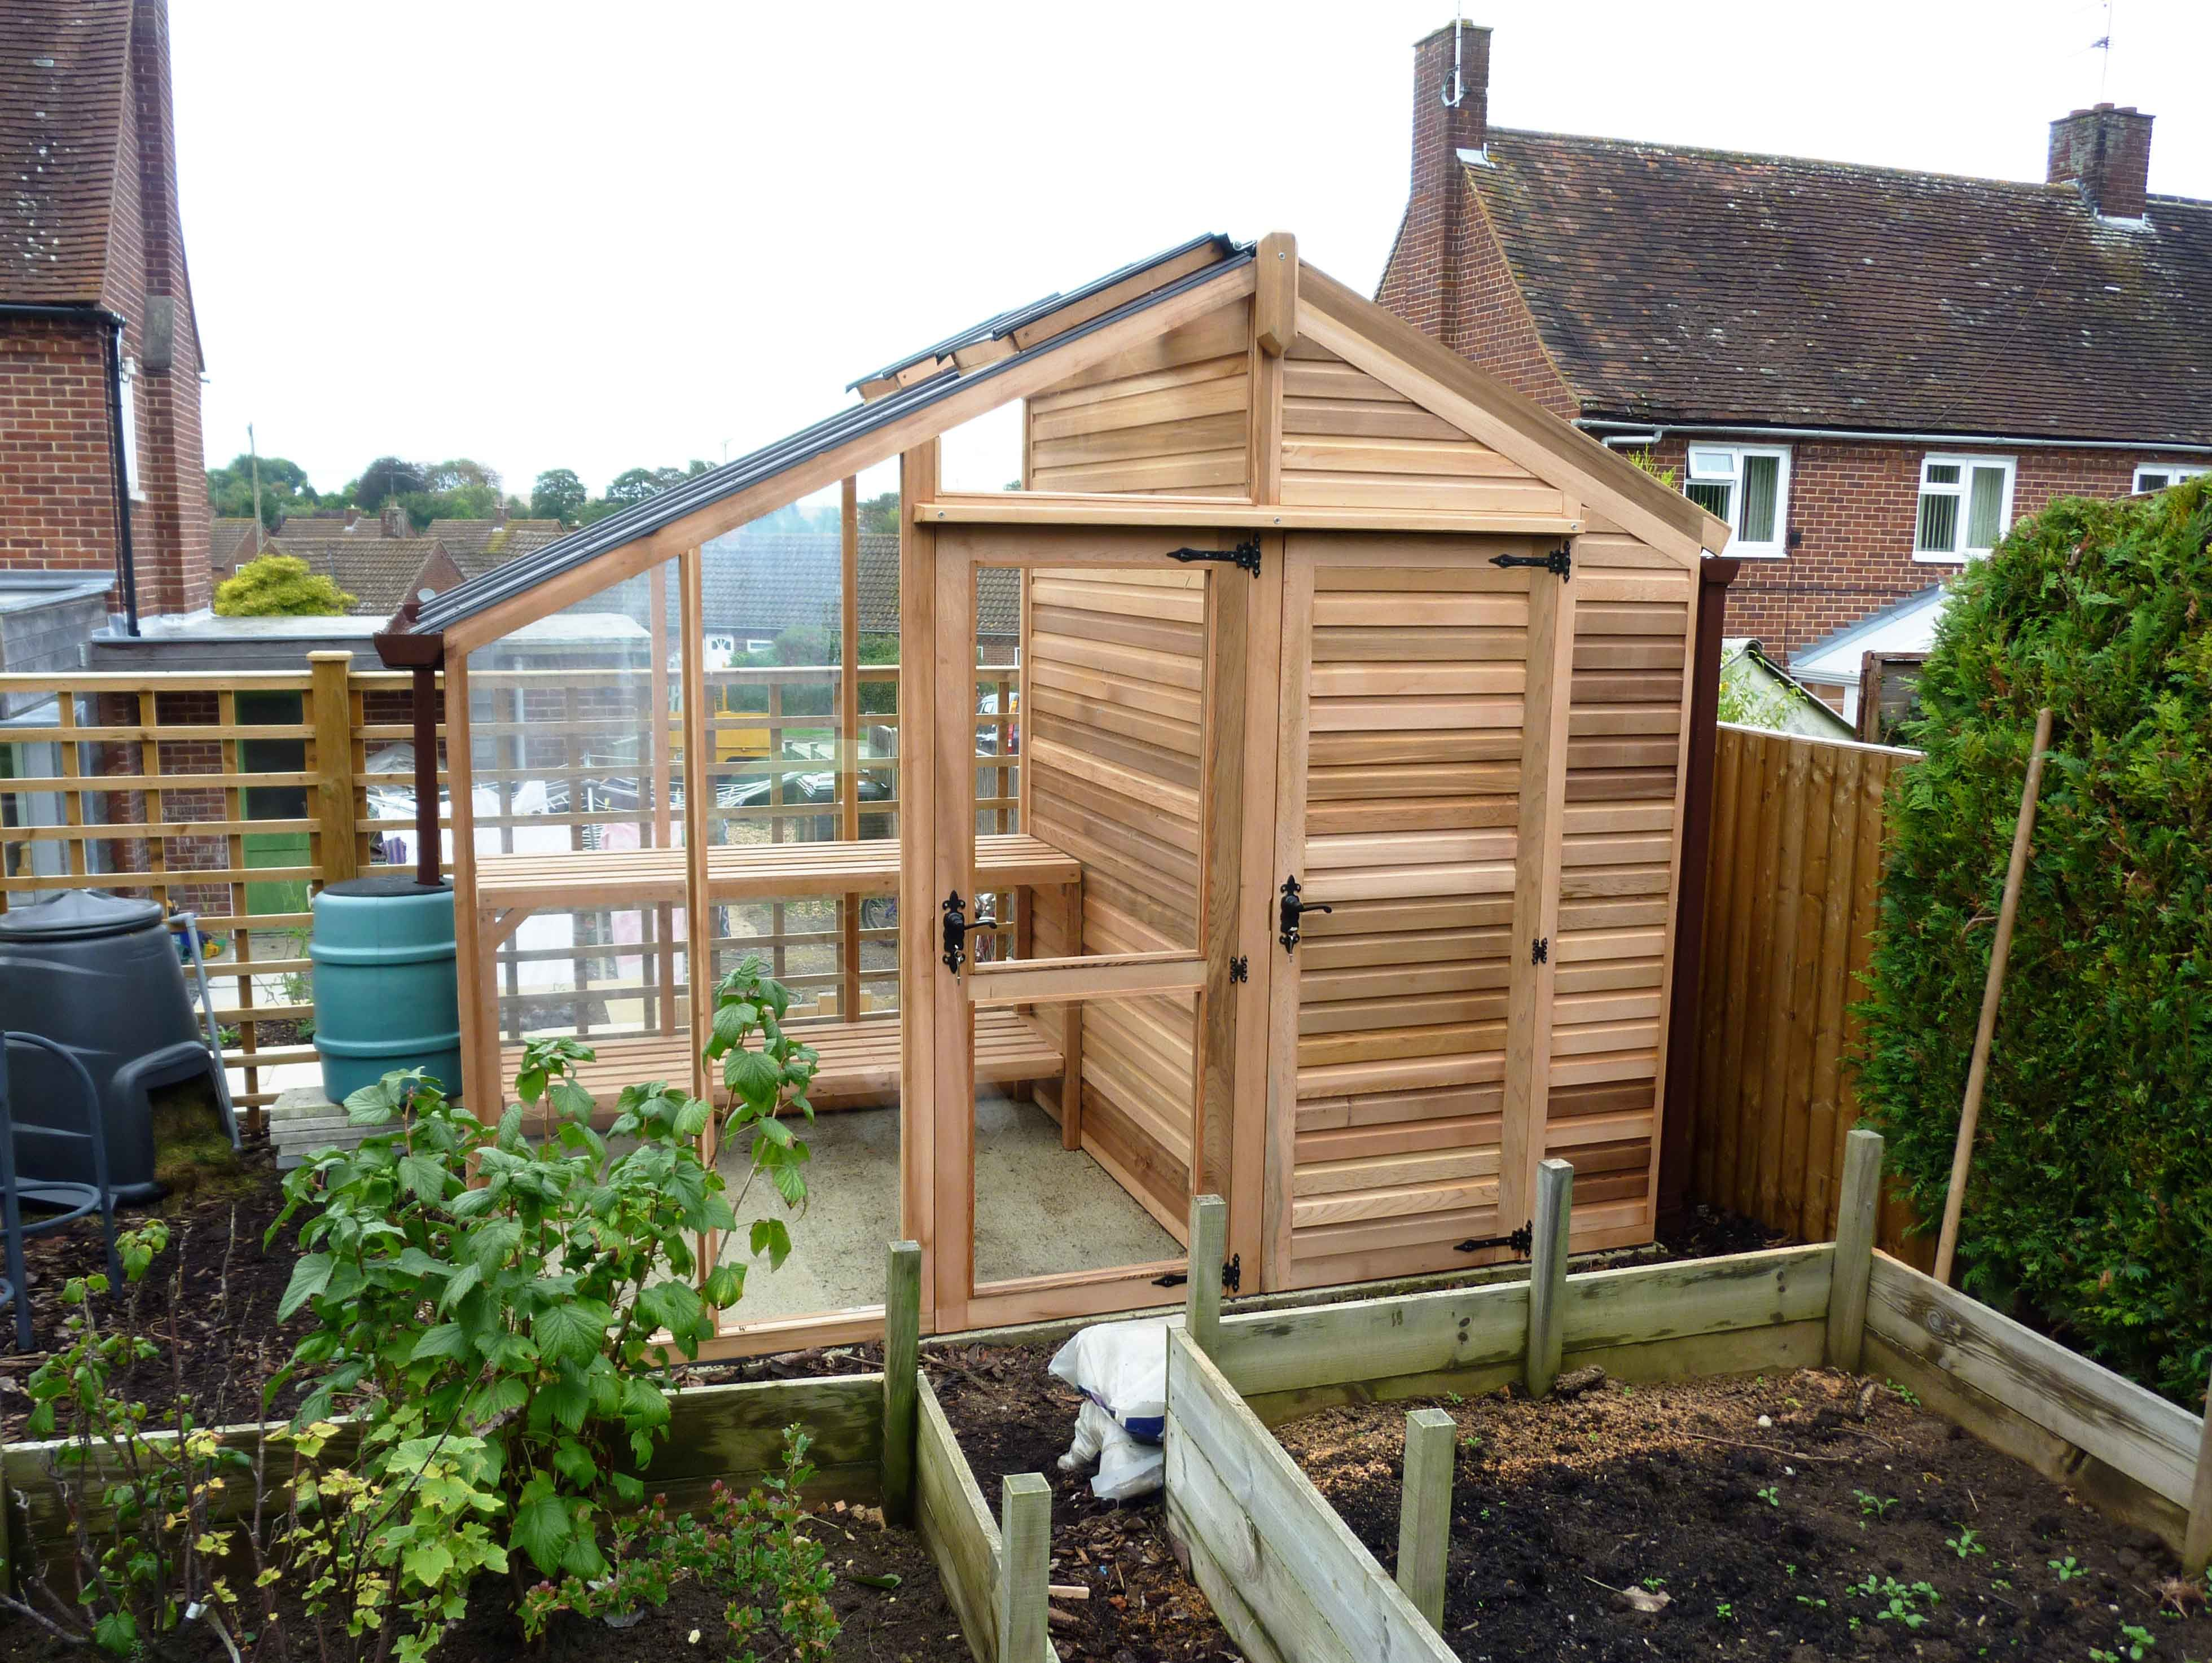 centaur shed combo greenhouse with shingle roof - Garden Sheds With Greenhouse